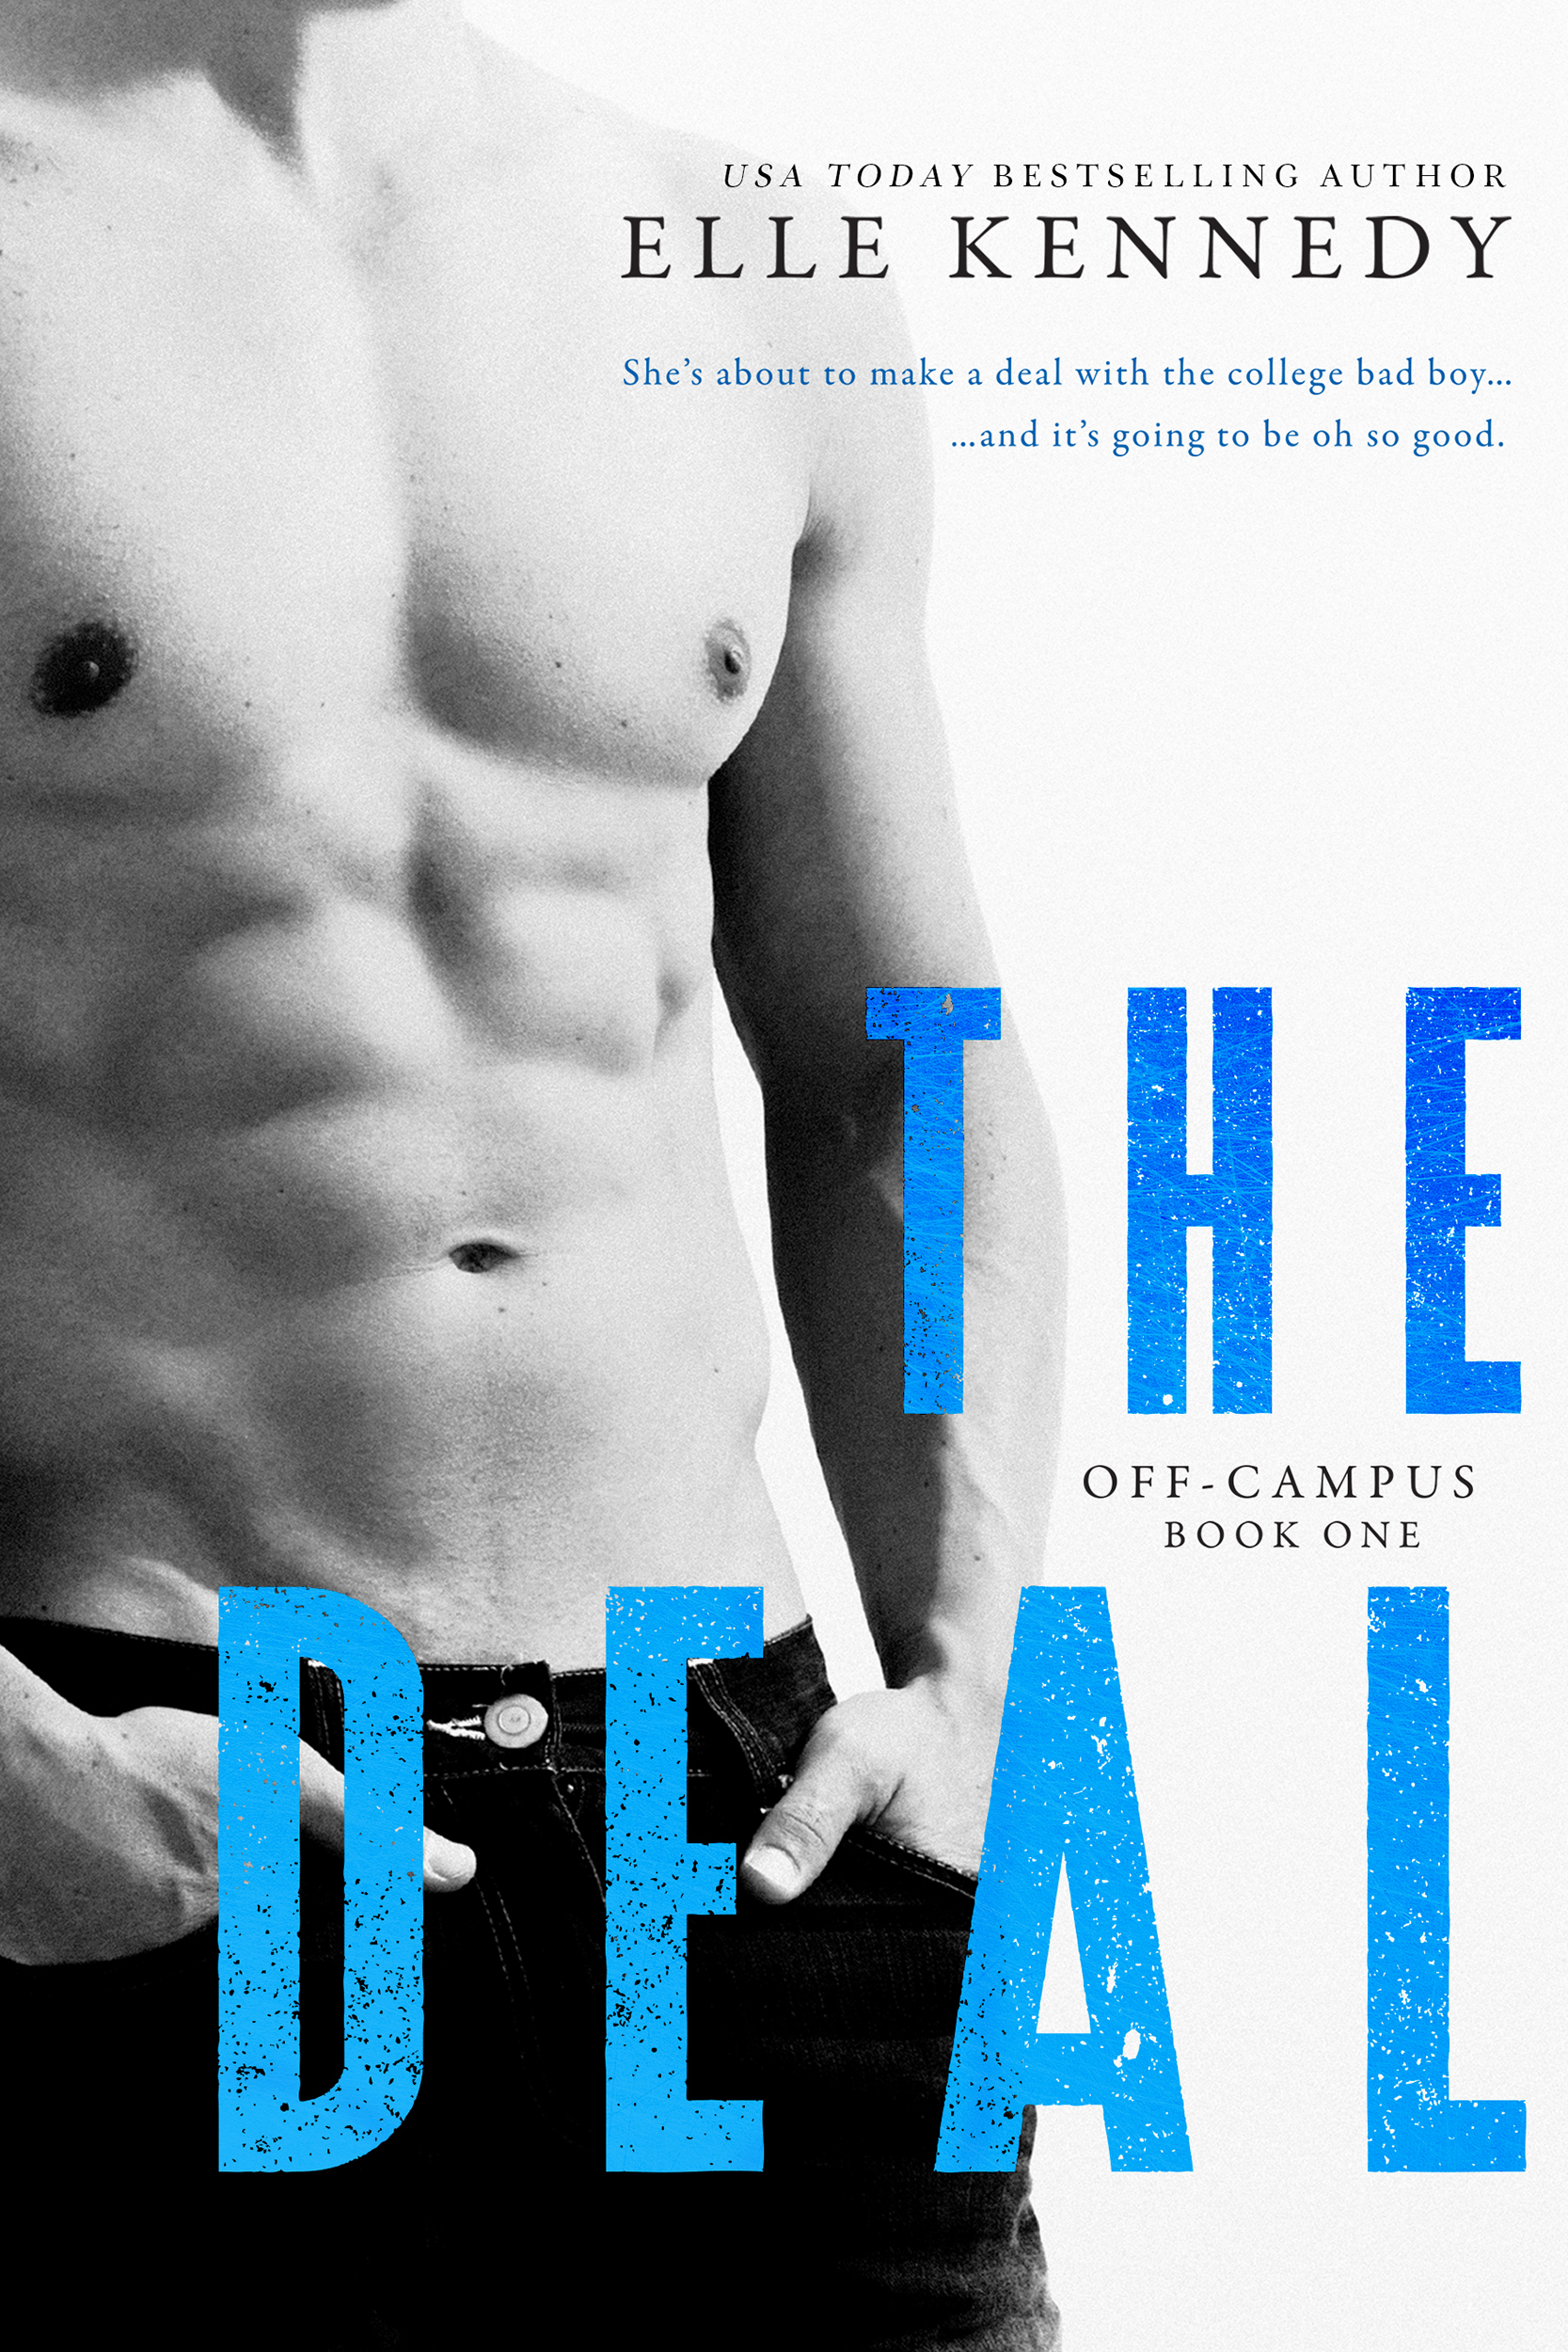 Review: The Deal by Elle Kennedy ~ A MUST READ!